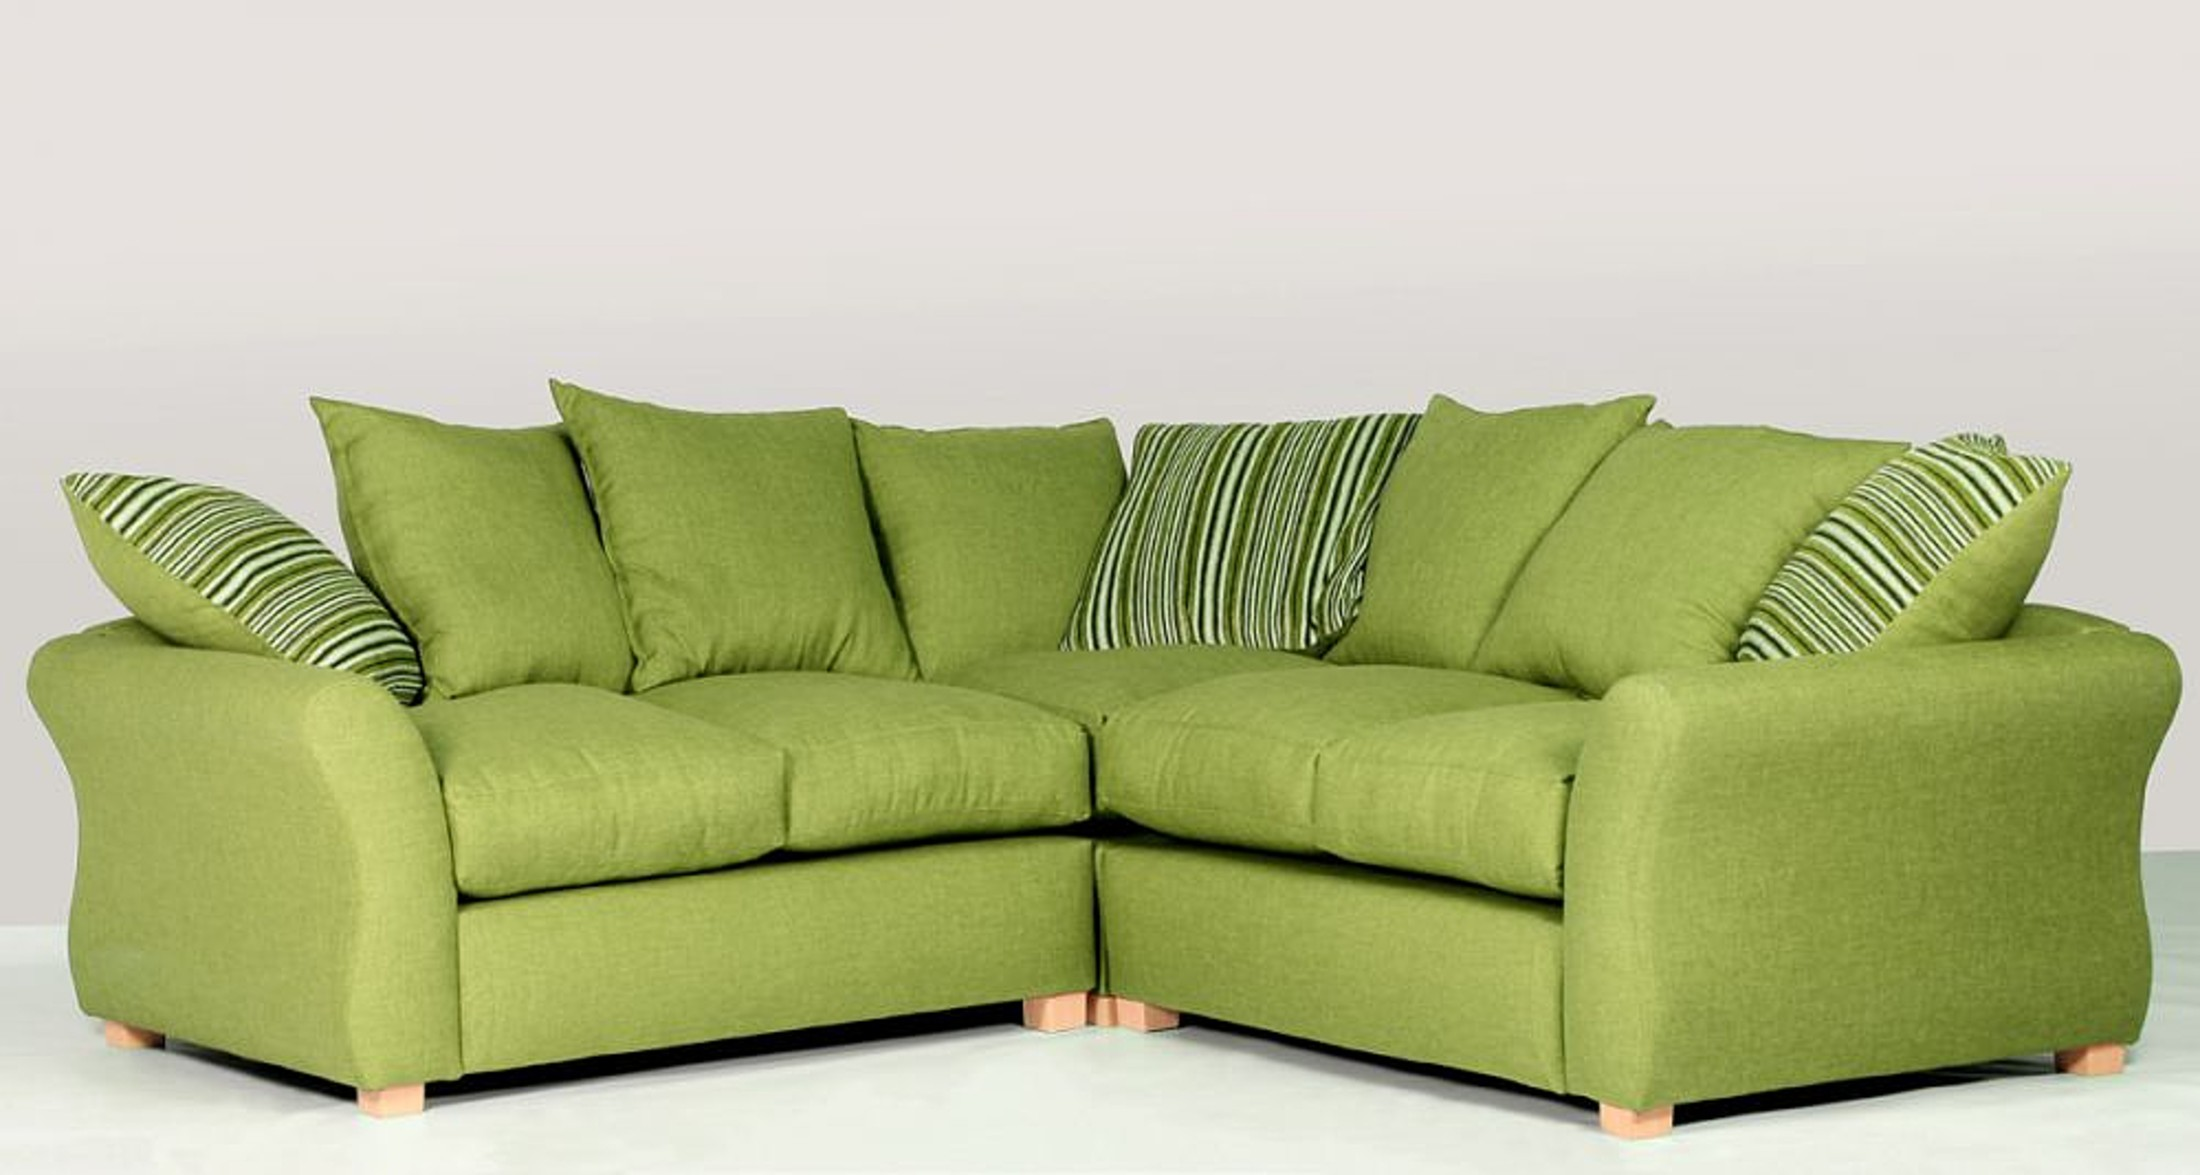 green leather corner sofa bed emerald velvet how to choose the right